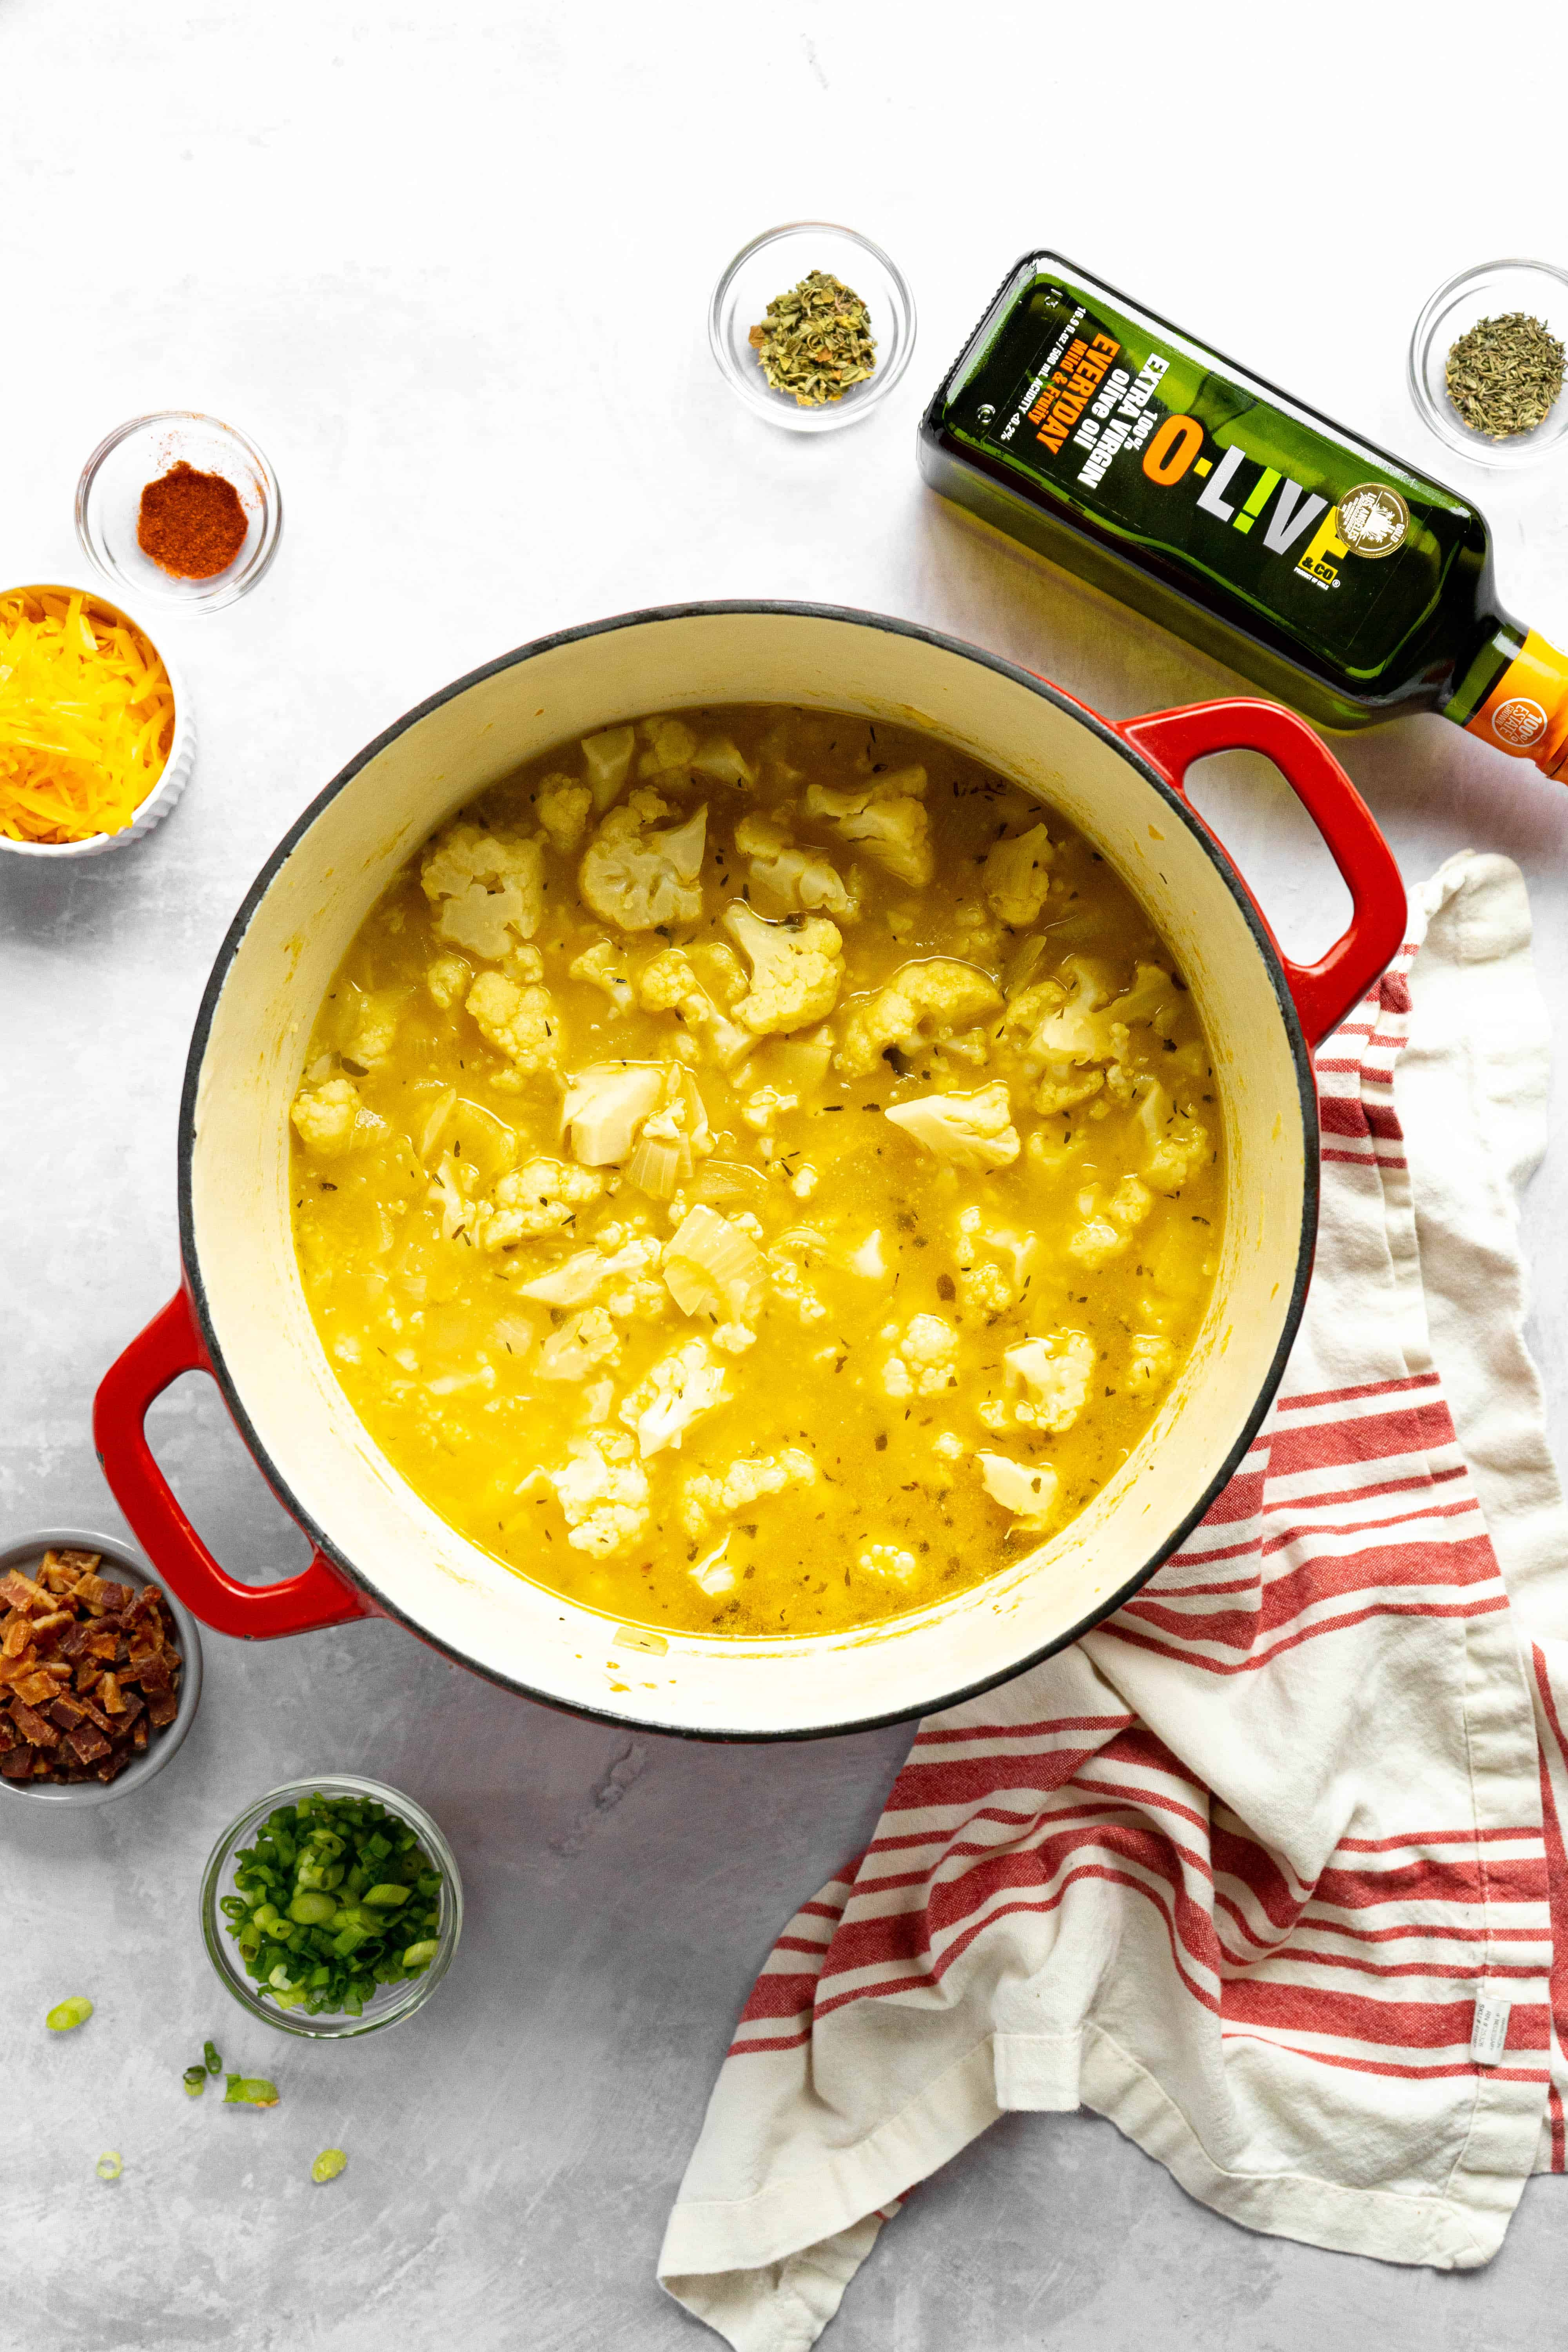 A pot full of broth and cauliflower.